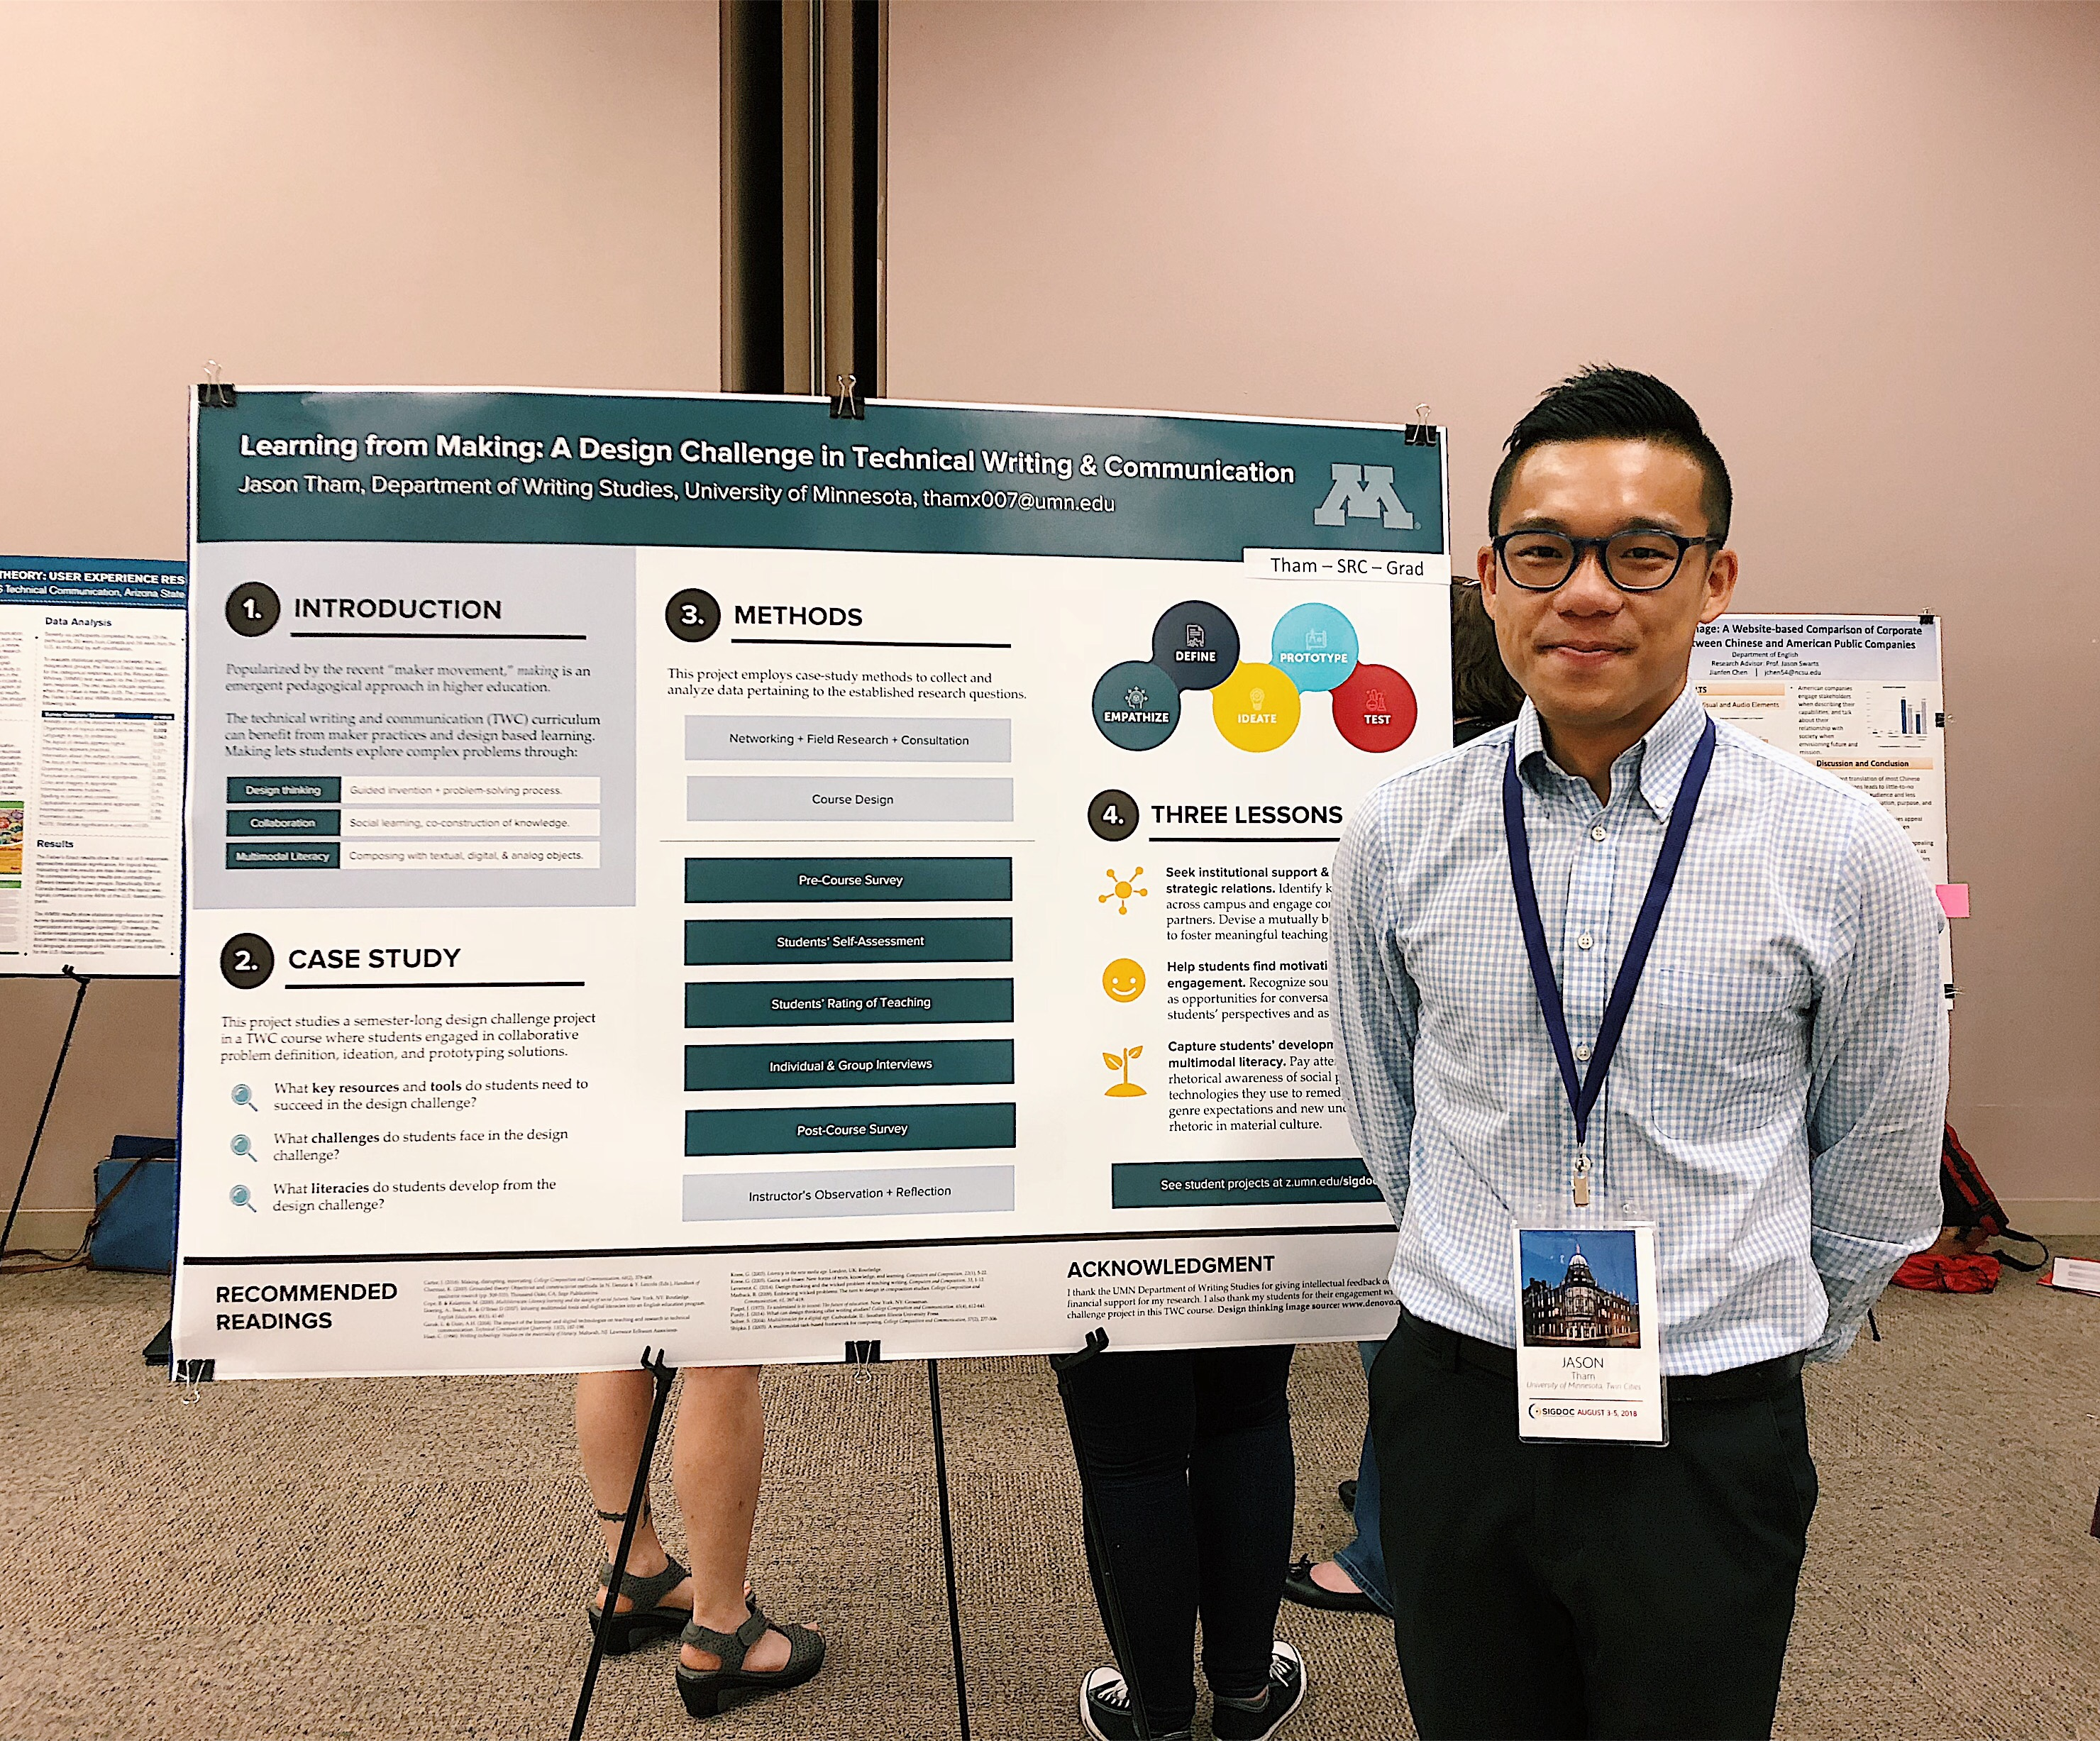 Image of Jason Tham with his poster at SIGDOC 2018